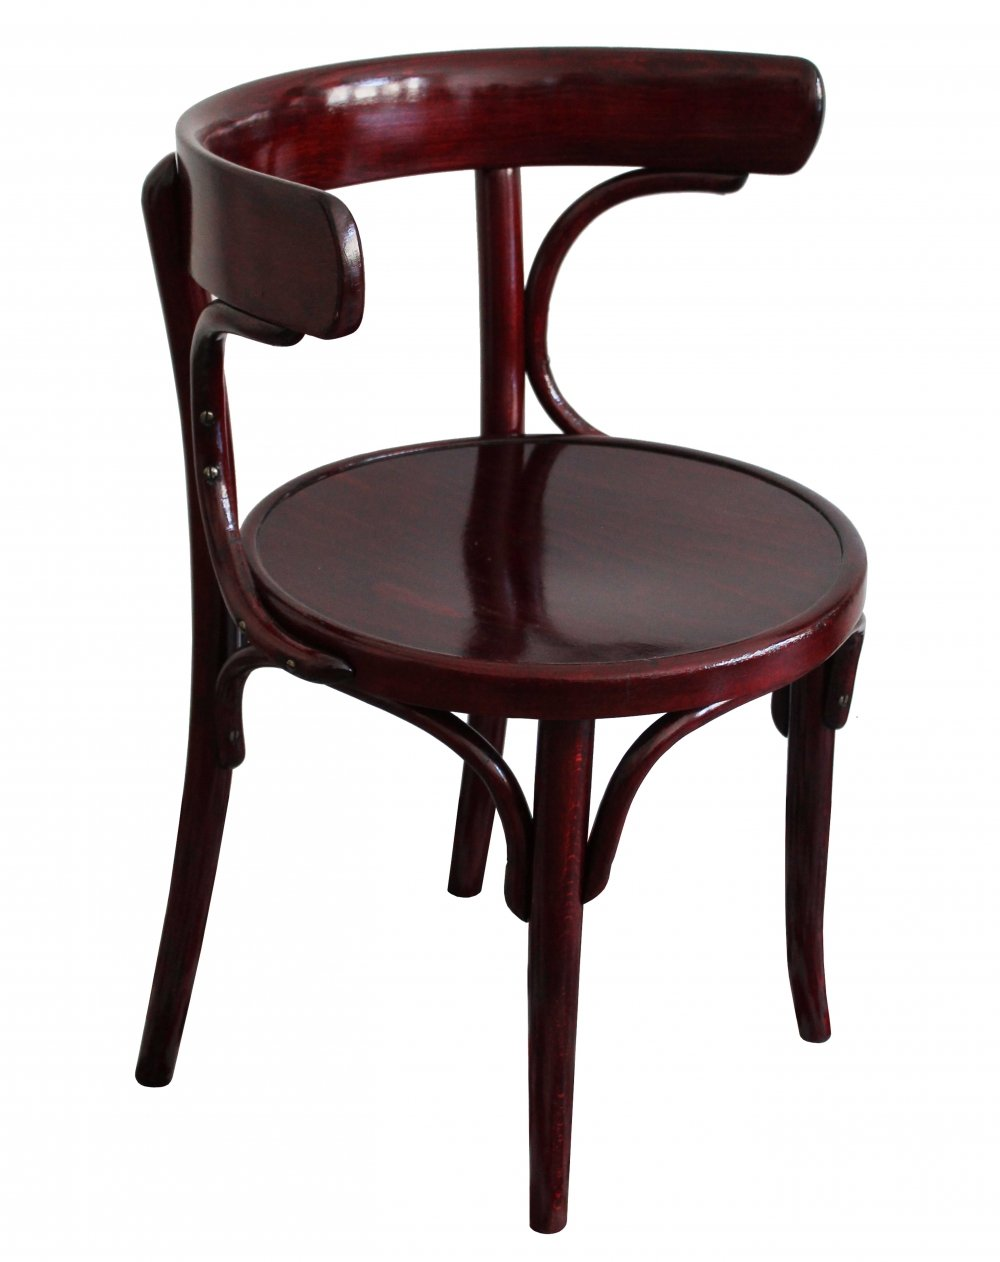 Directors Chair by Thonet, 1920s